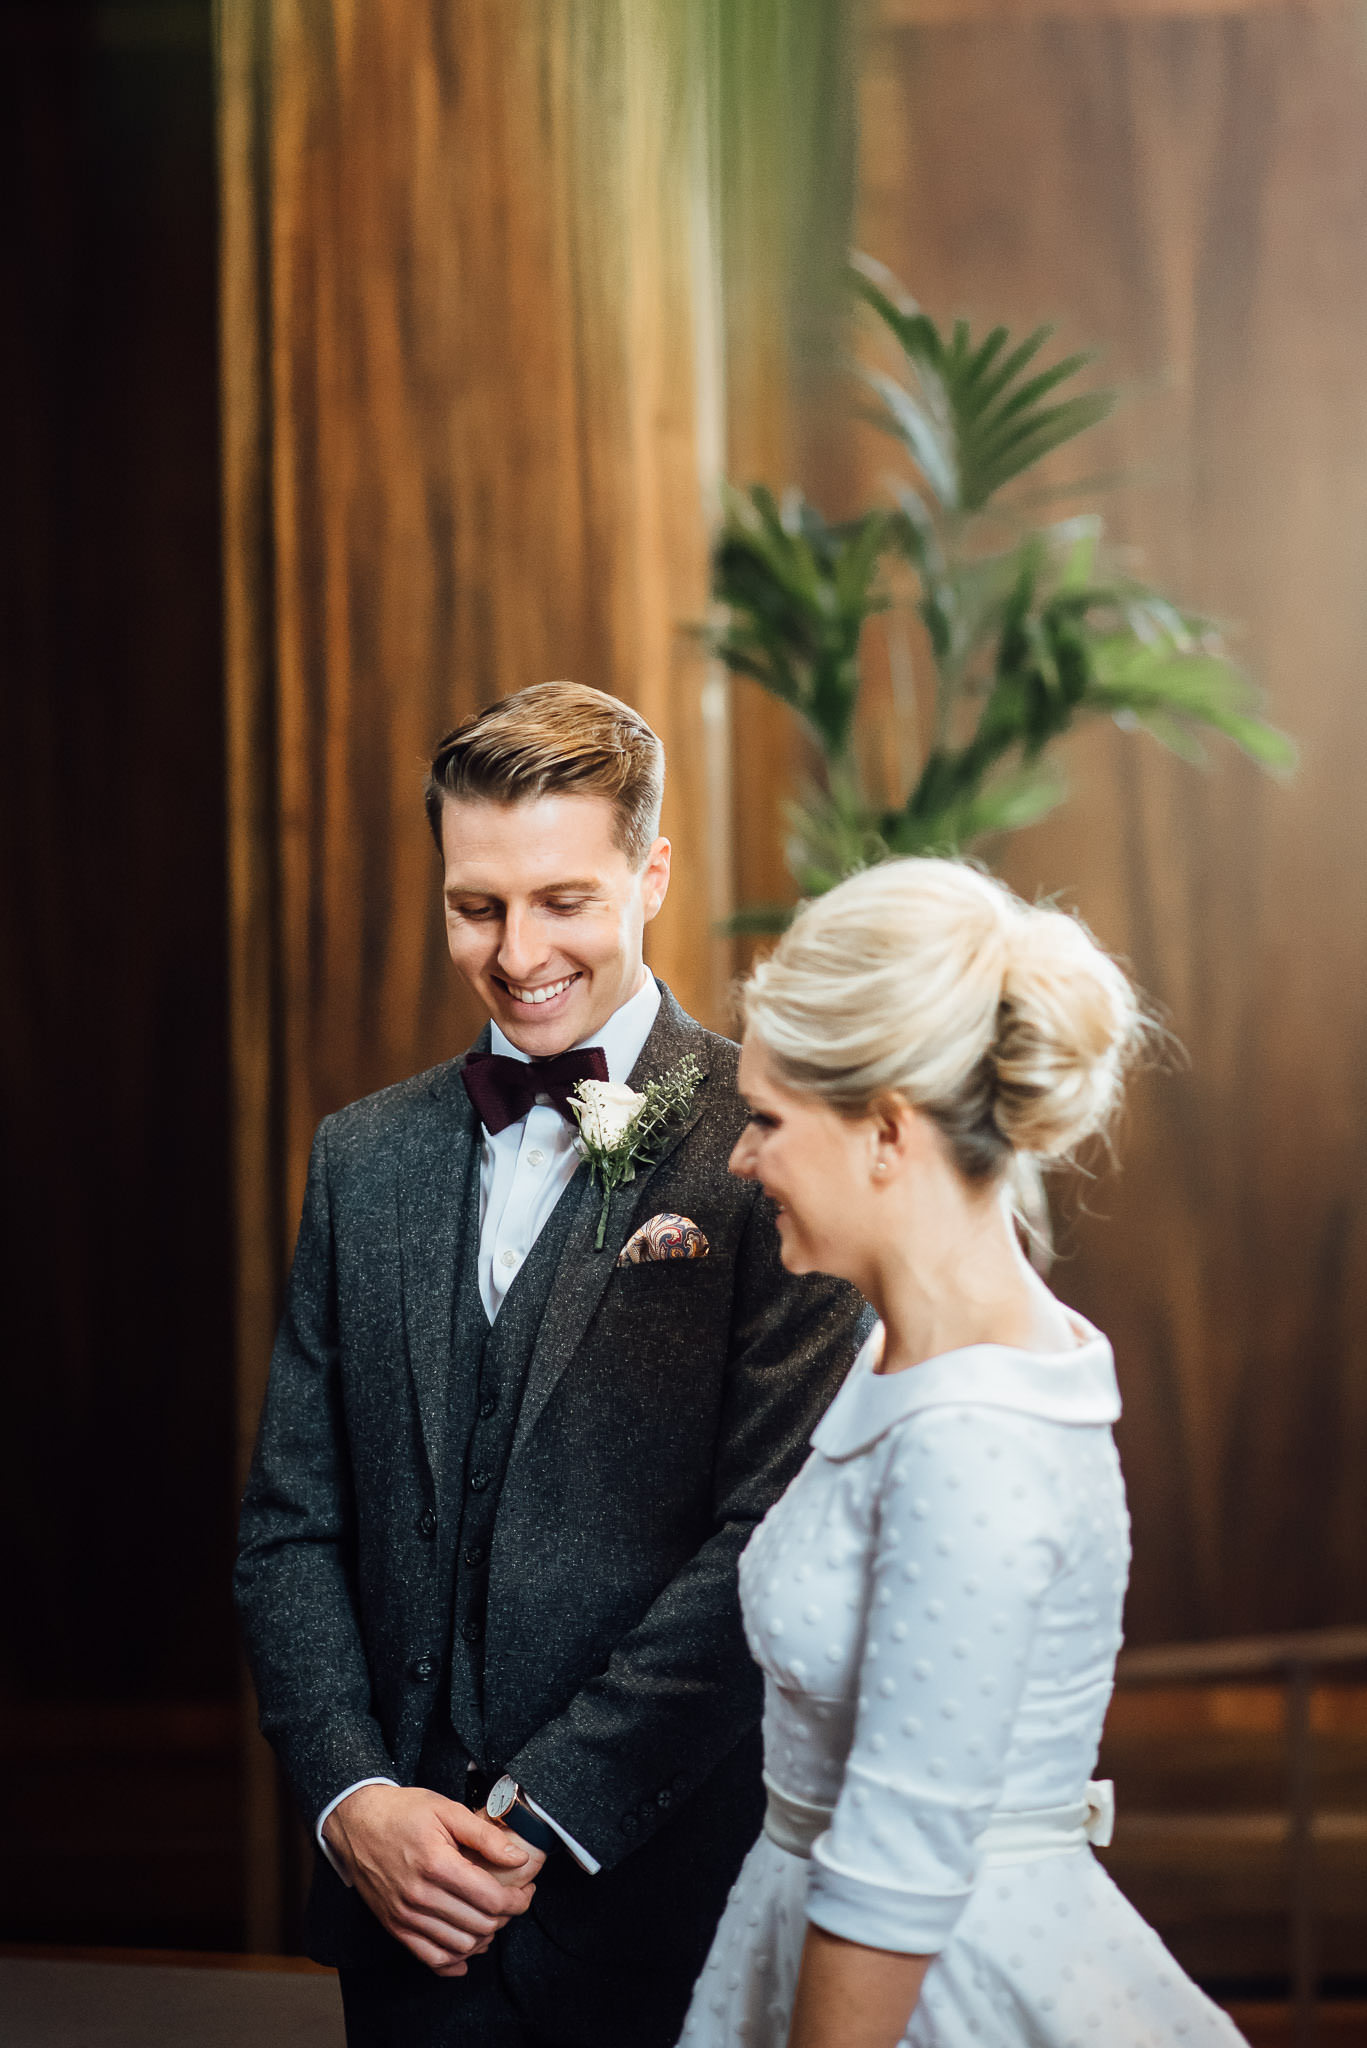 Wedding ceremony in stoke newington town hall wedding by creative and alternative london wedding photographer the shannons photography